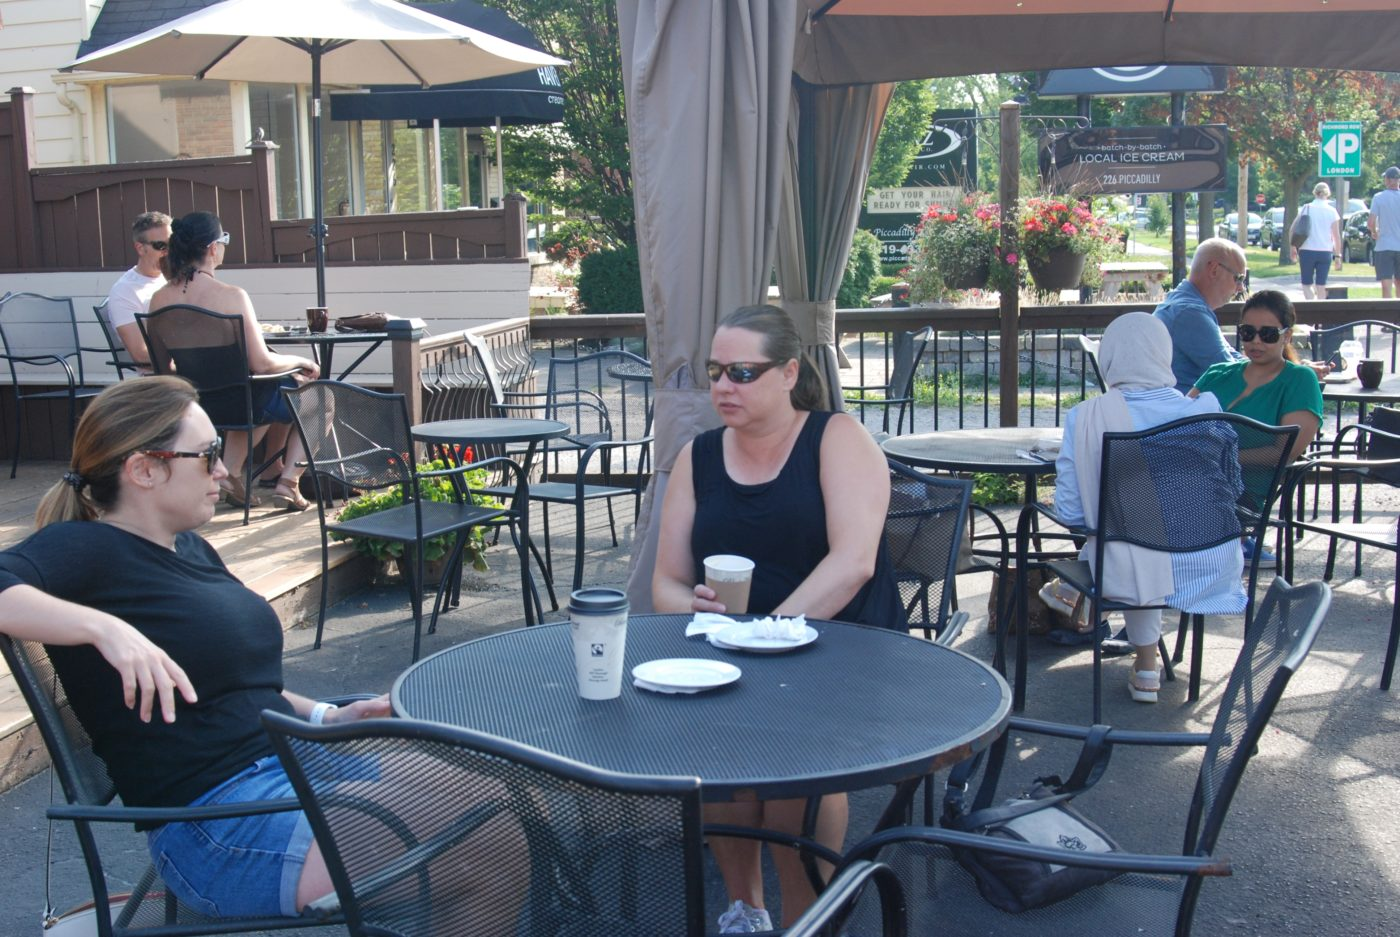 People at the Black Walnut Bakery Cafe patio in London, Ontario.